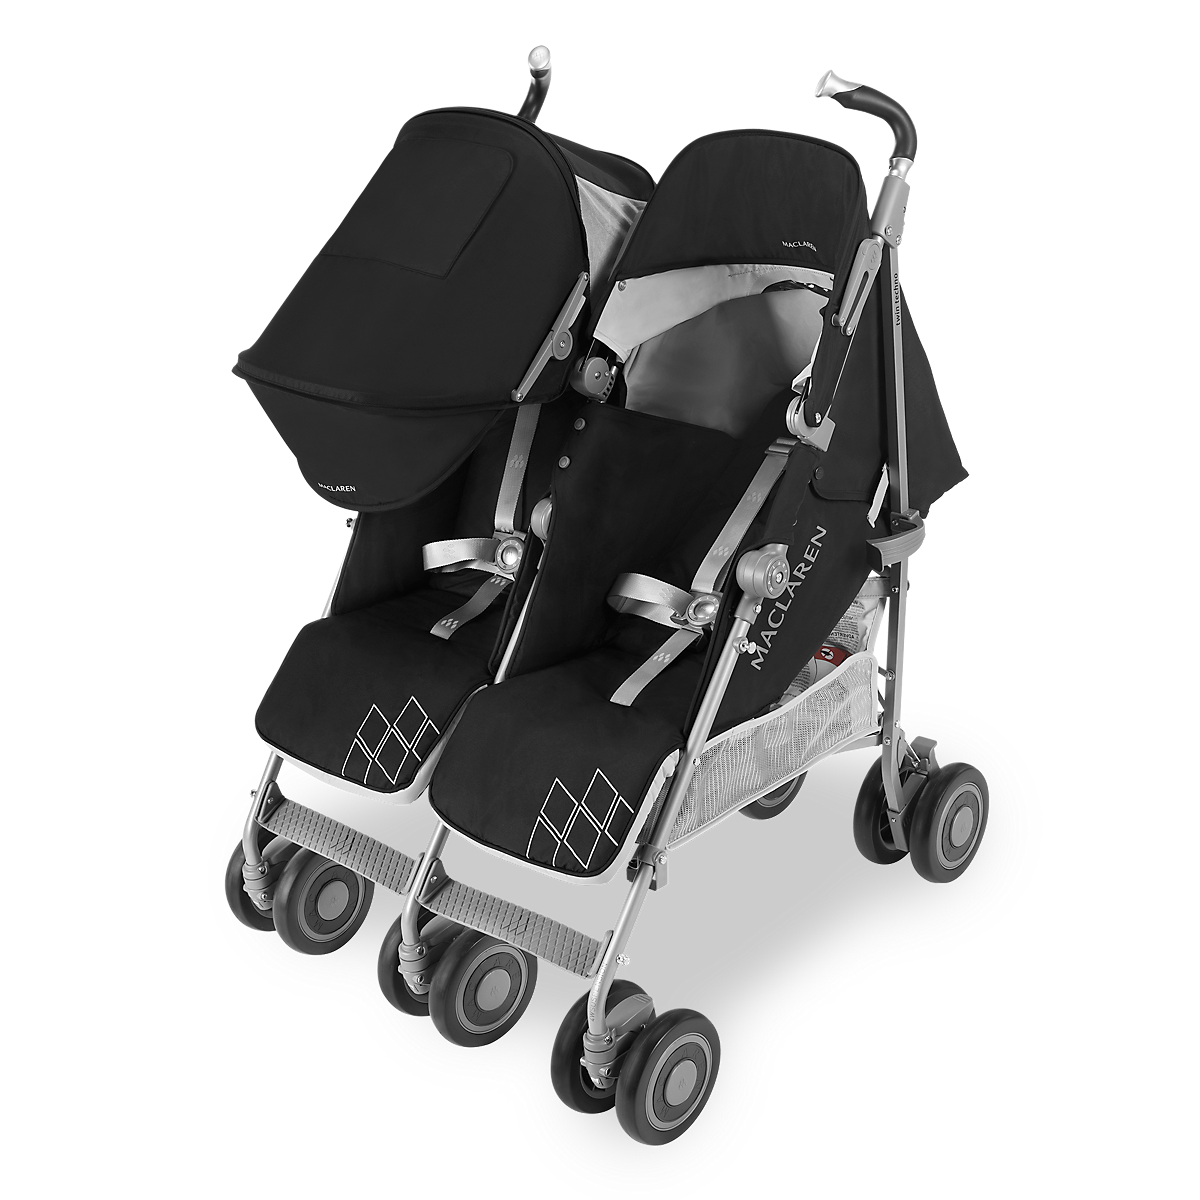 Twin Techno Stroller, Baby jogger city select, Stroller